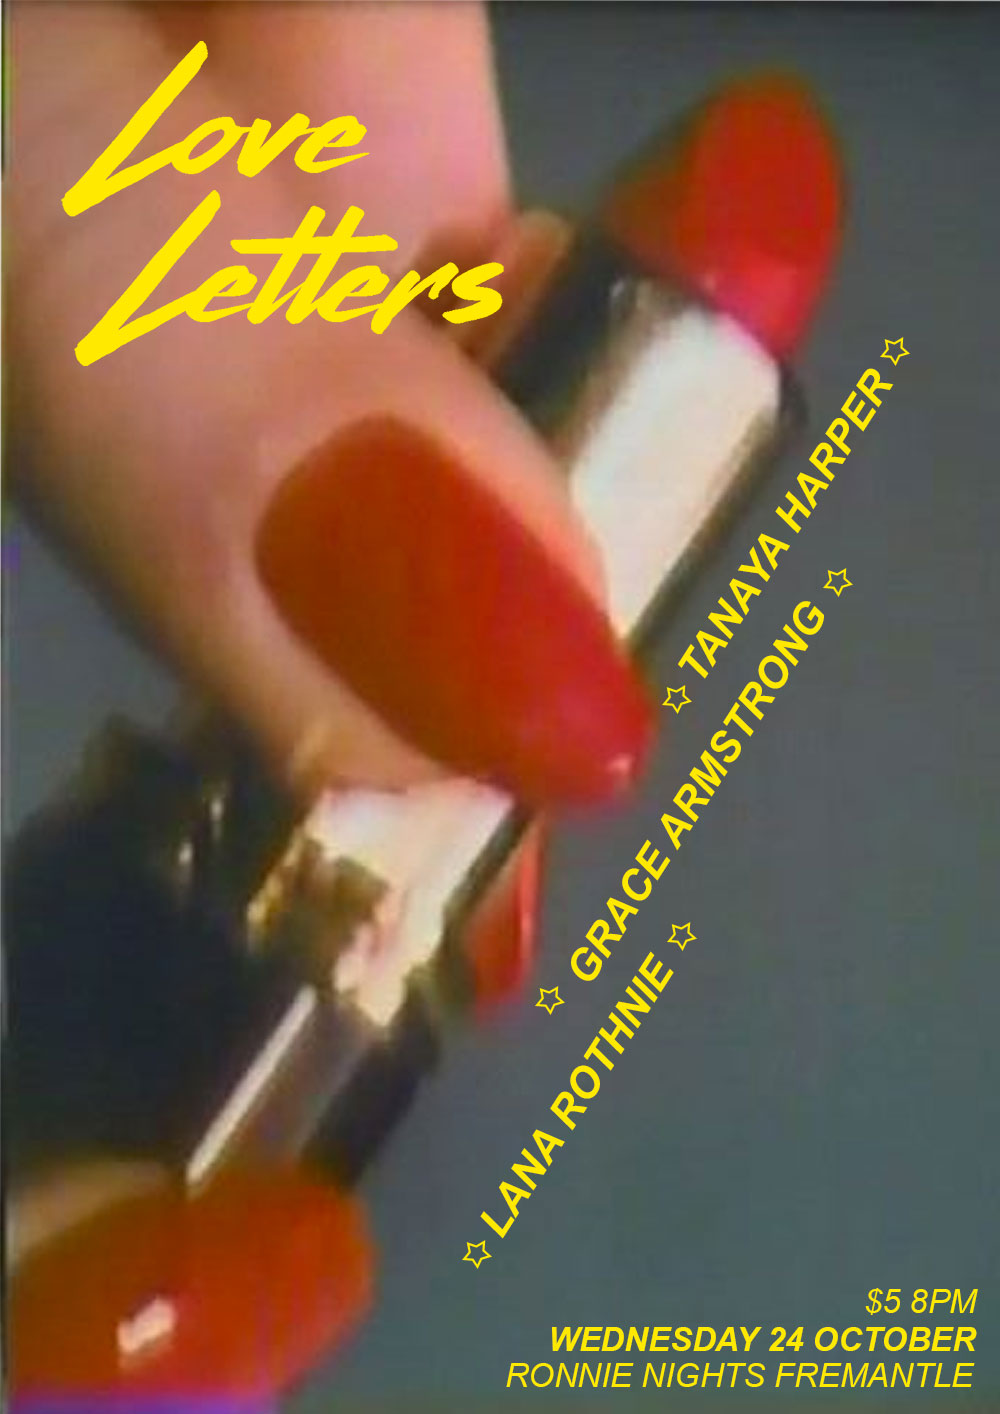 love-letters-ronnie-nights-web-poster.jpg